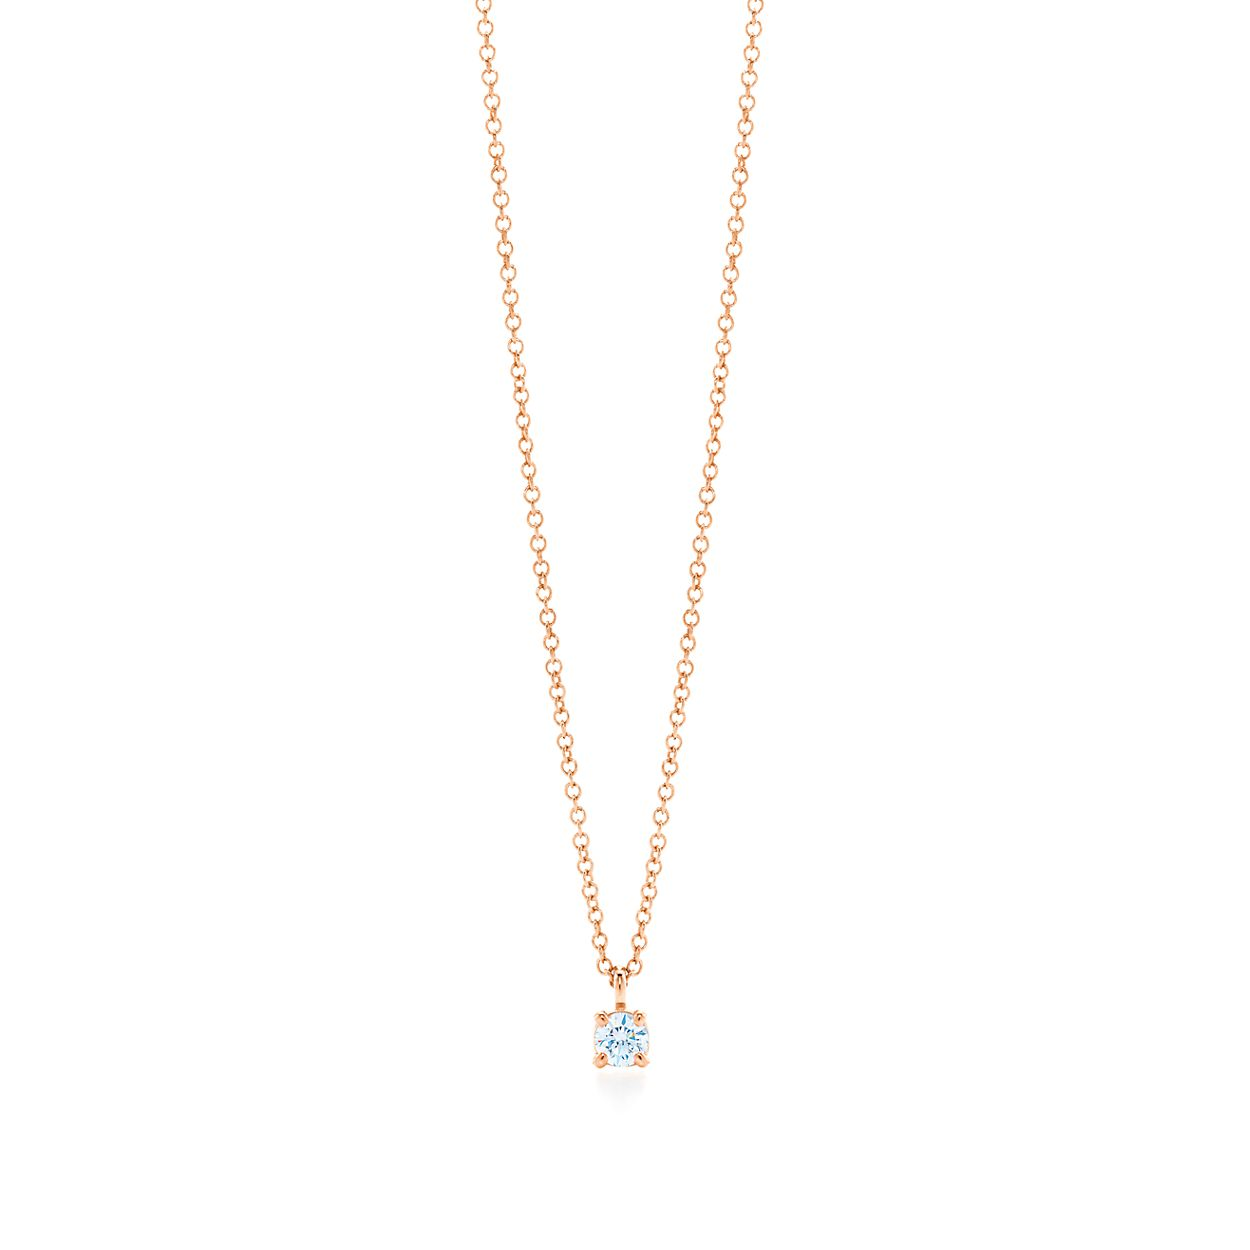 igi jewelry org diamond for id sale copy necklace l certified solitaire drop and carat j img co platinum necklaces tiffany